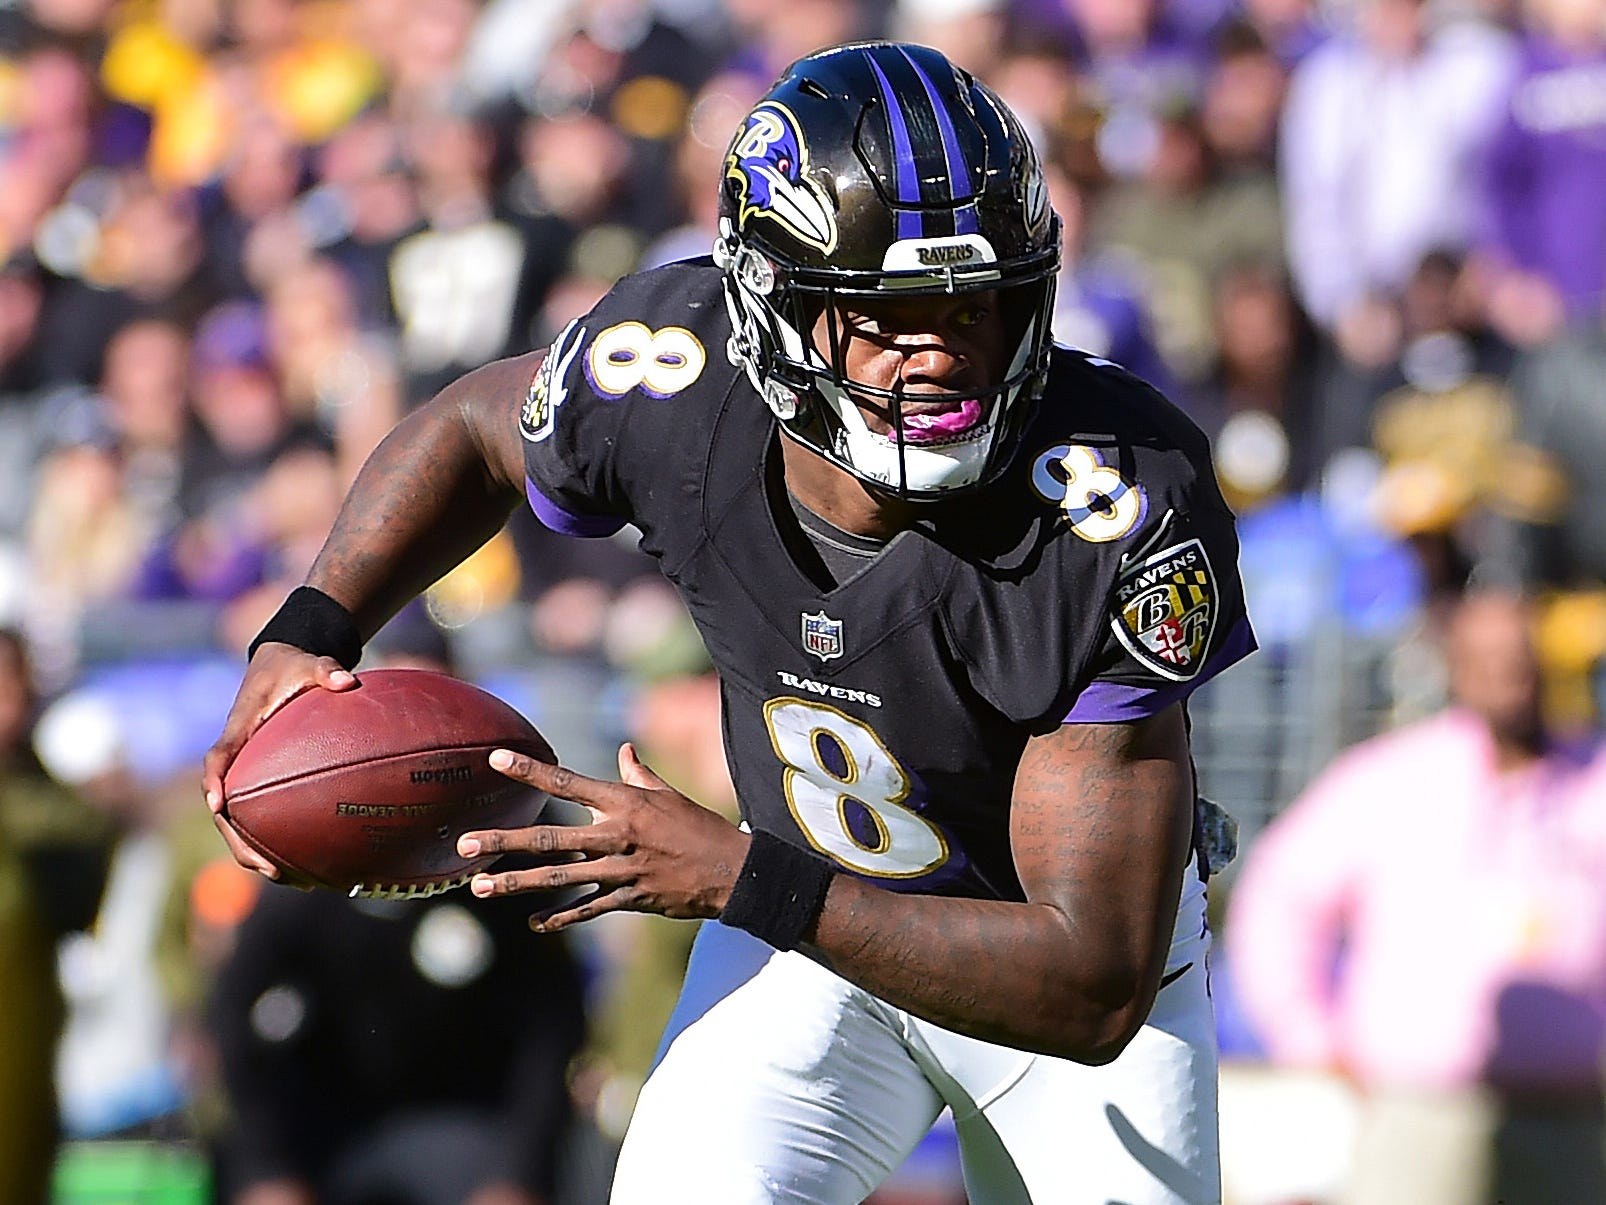 16. Ravens (13): As season stunningly spirals away, might be time to give Lamar Jackson shot rather than continue untenable Joe Flacco-Jackson packages.